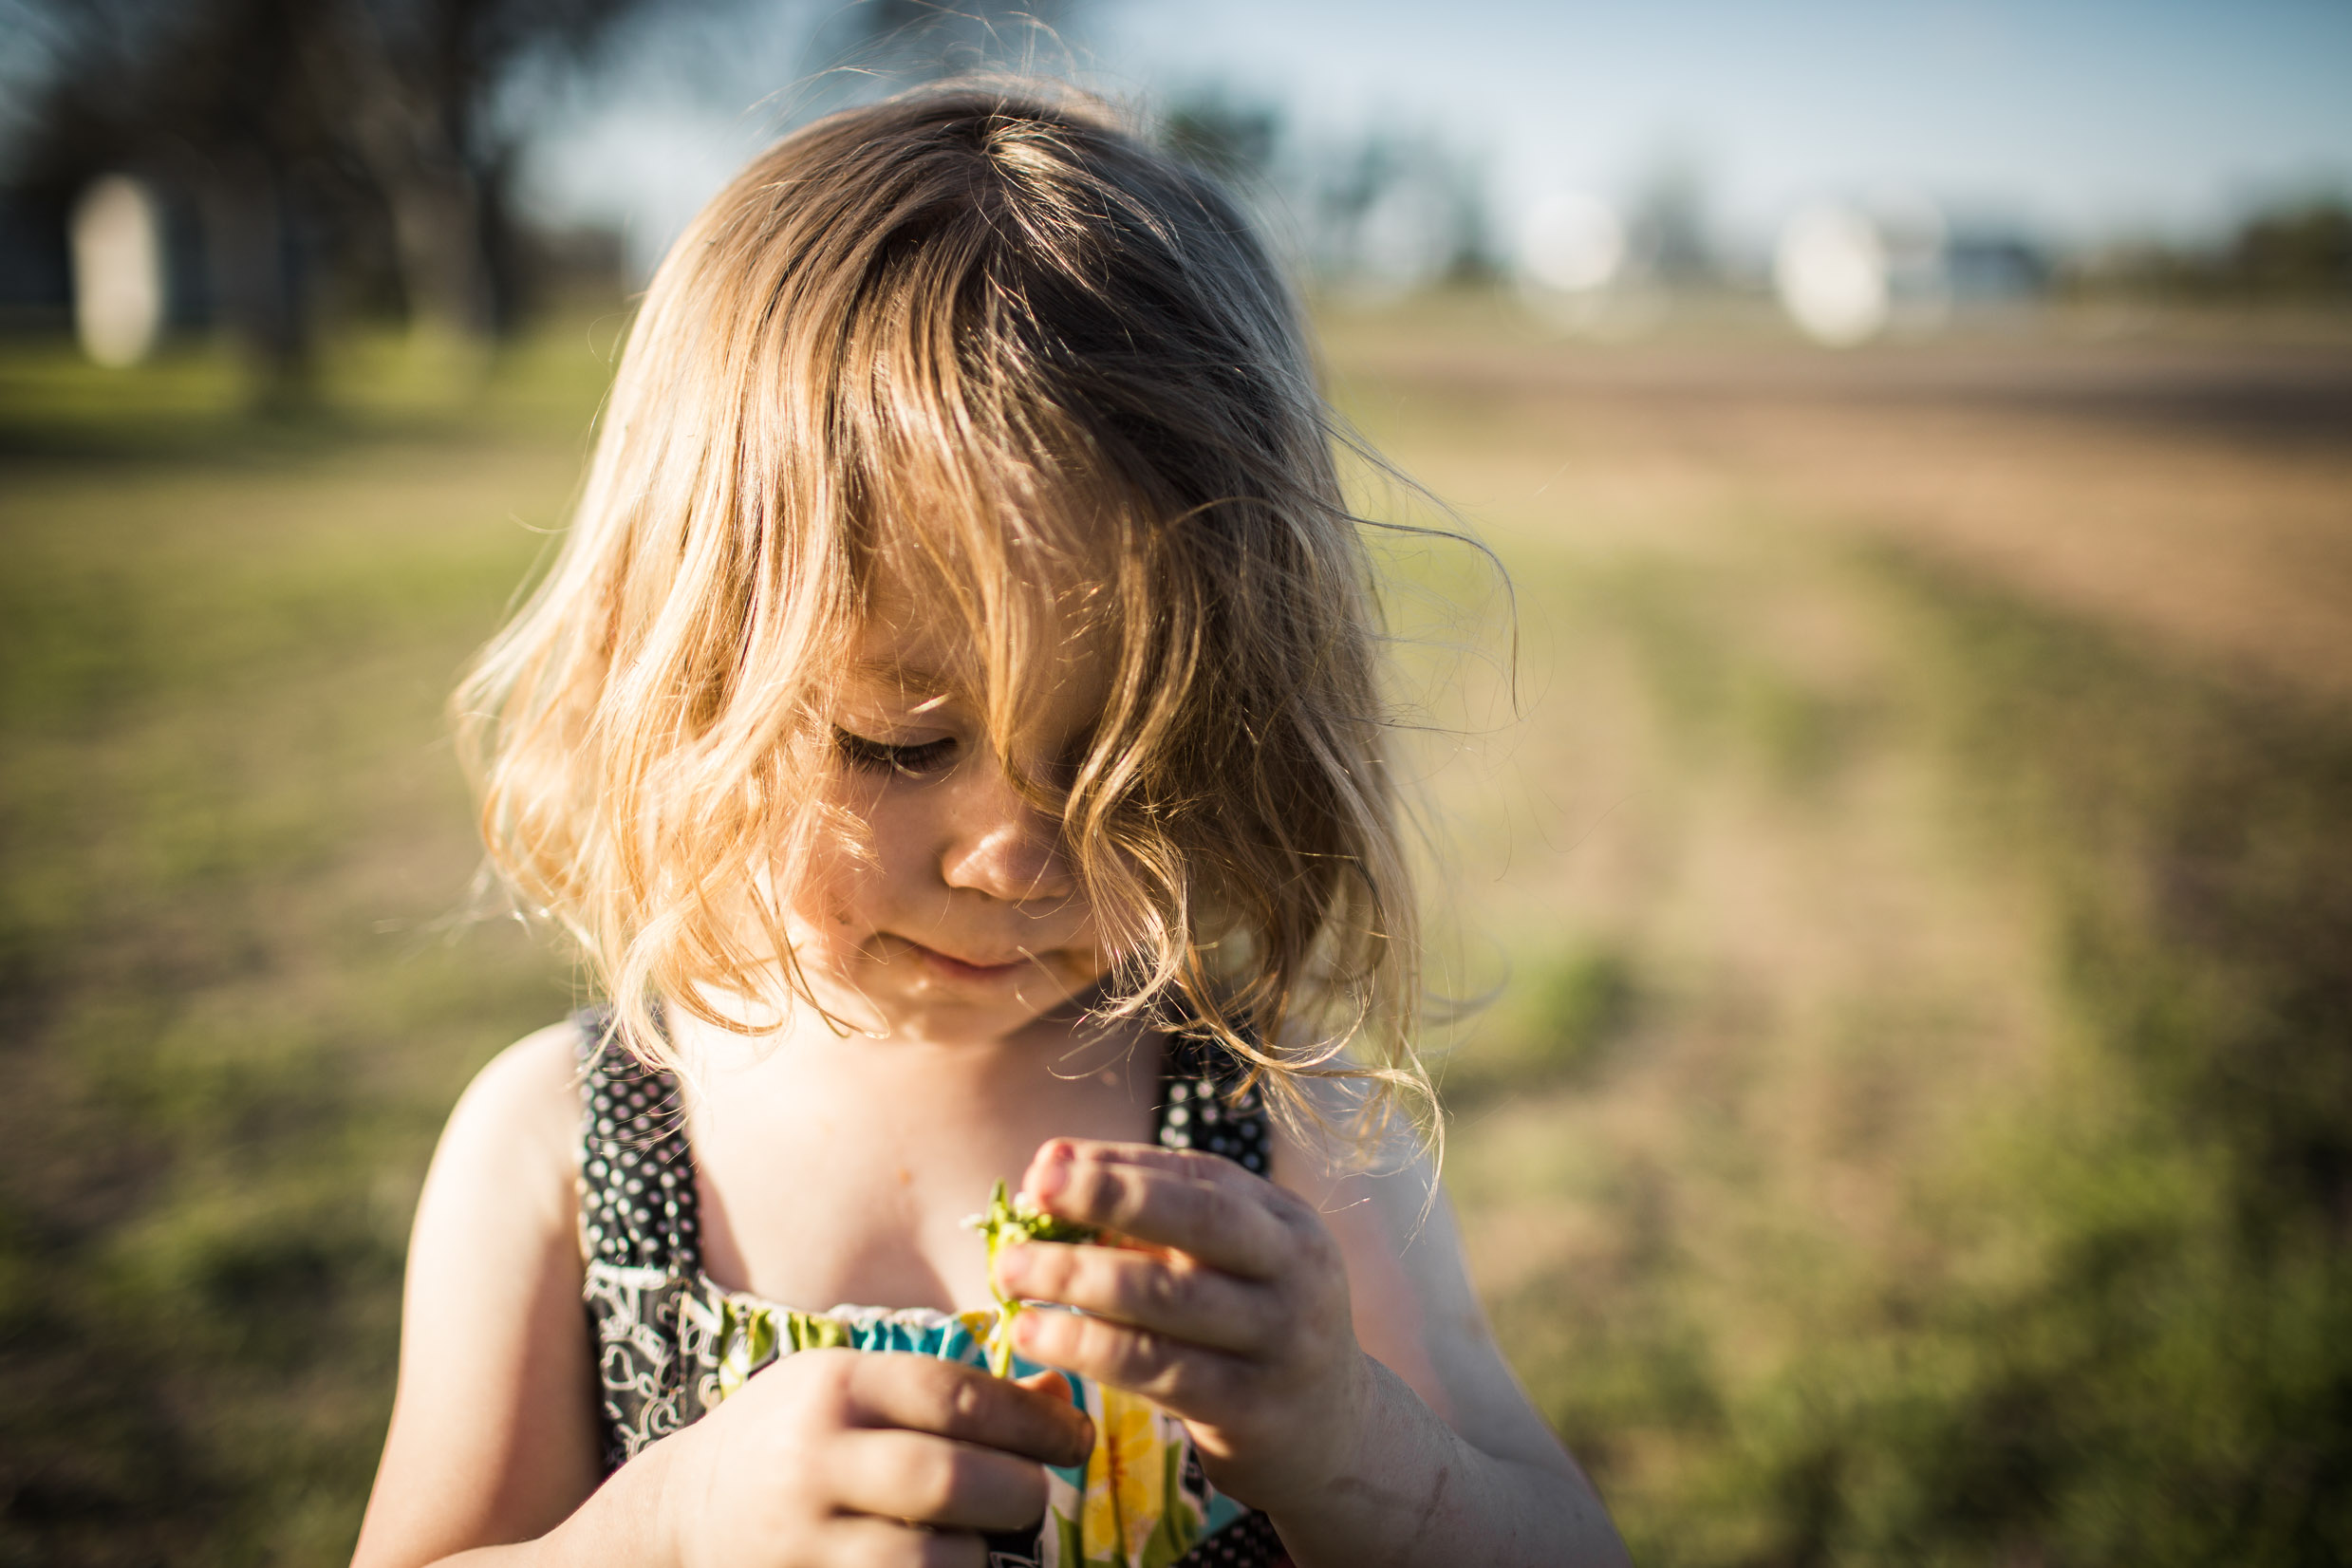 Exploring, Connected, Powerful, Lifestyle Family Sunset Session, Farm, Indiana, Laura Duggleby Photography-21.JPG